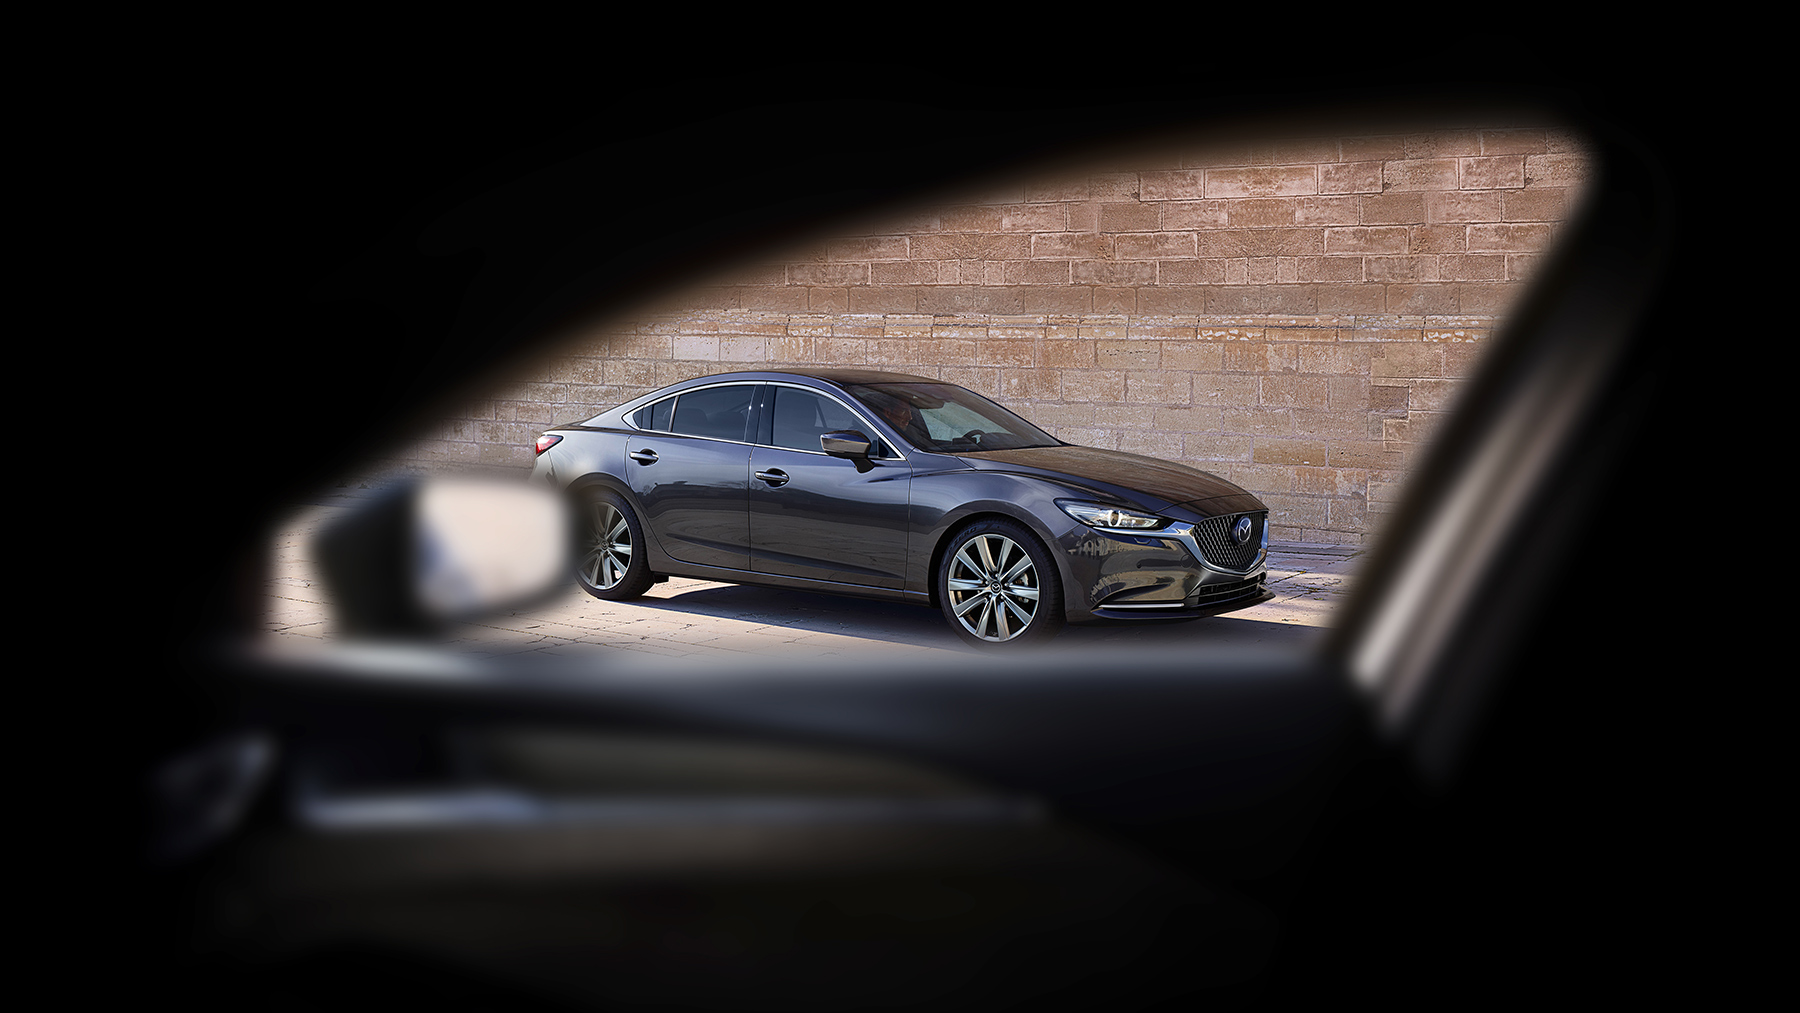 What's New for the 2020 Mazda 6?